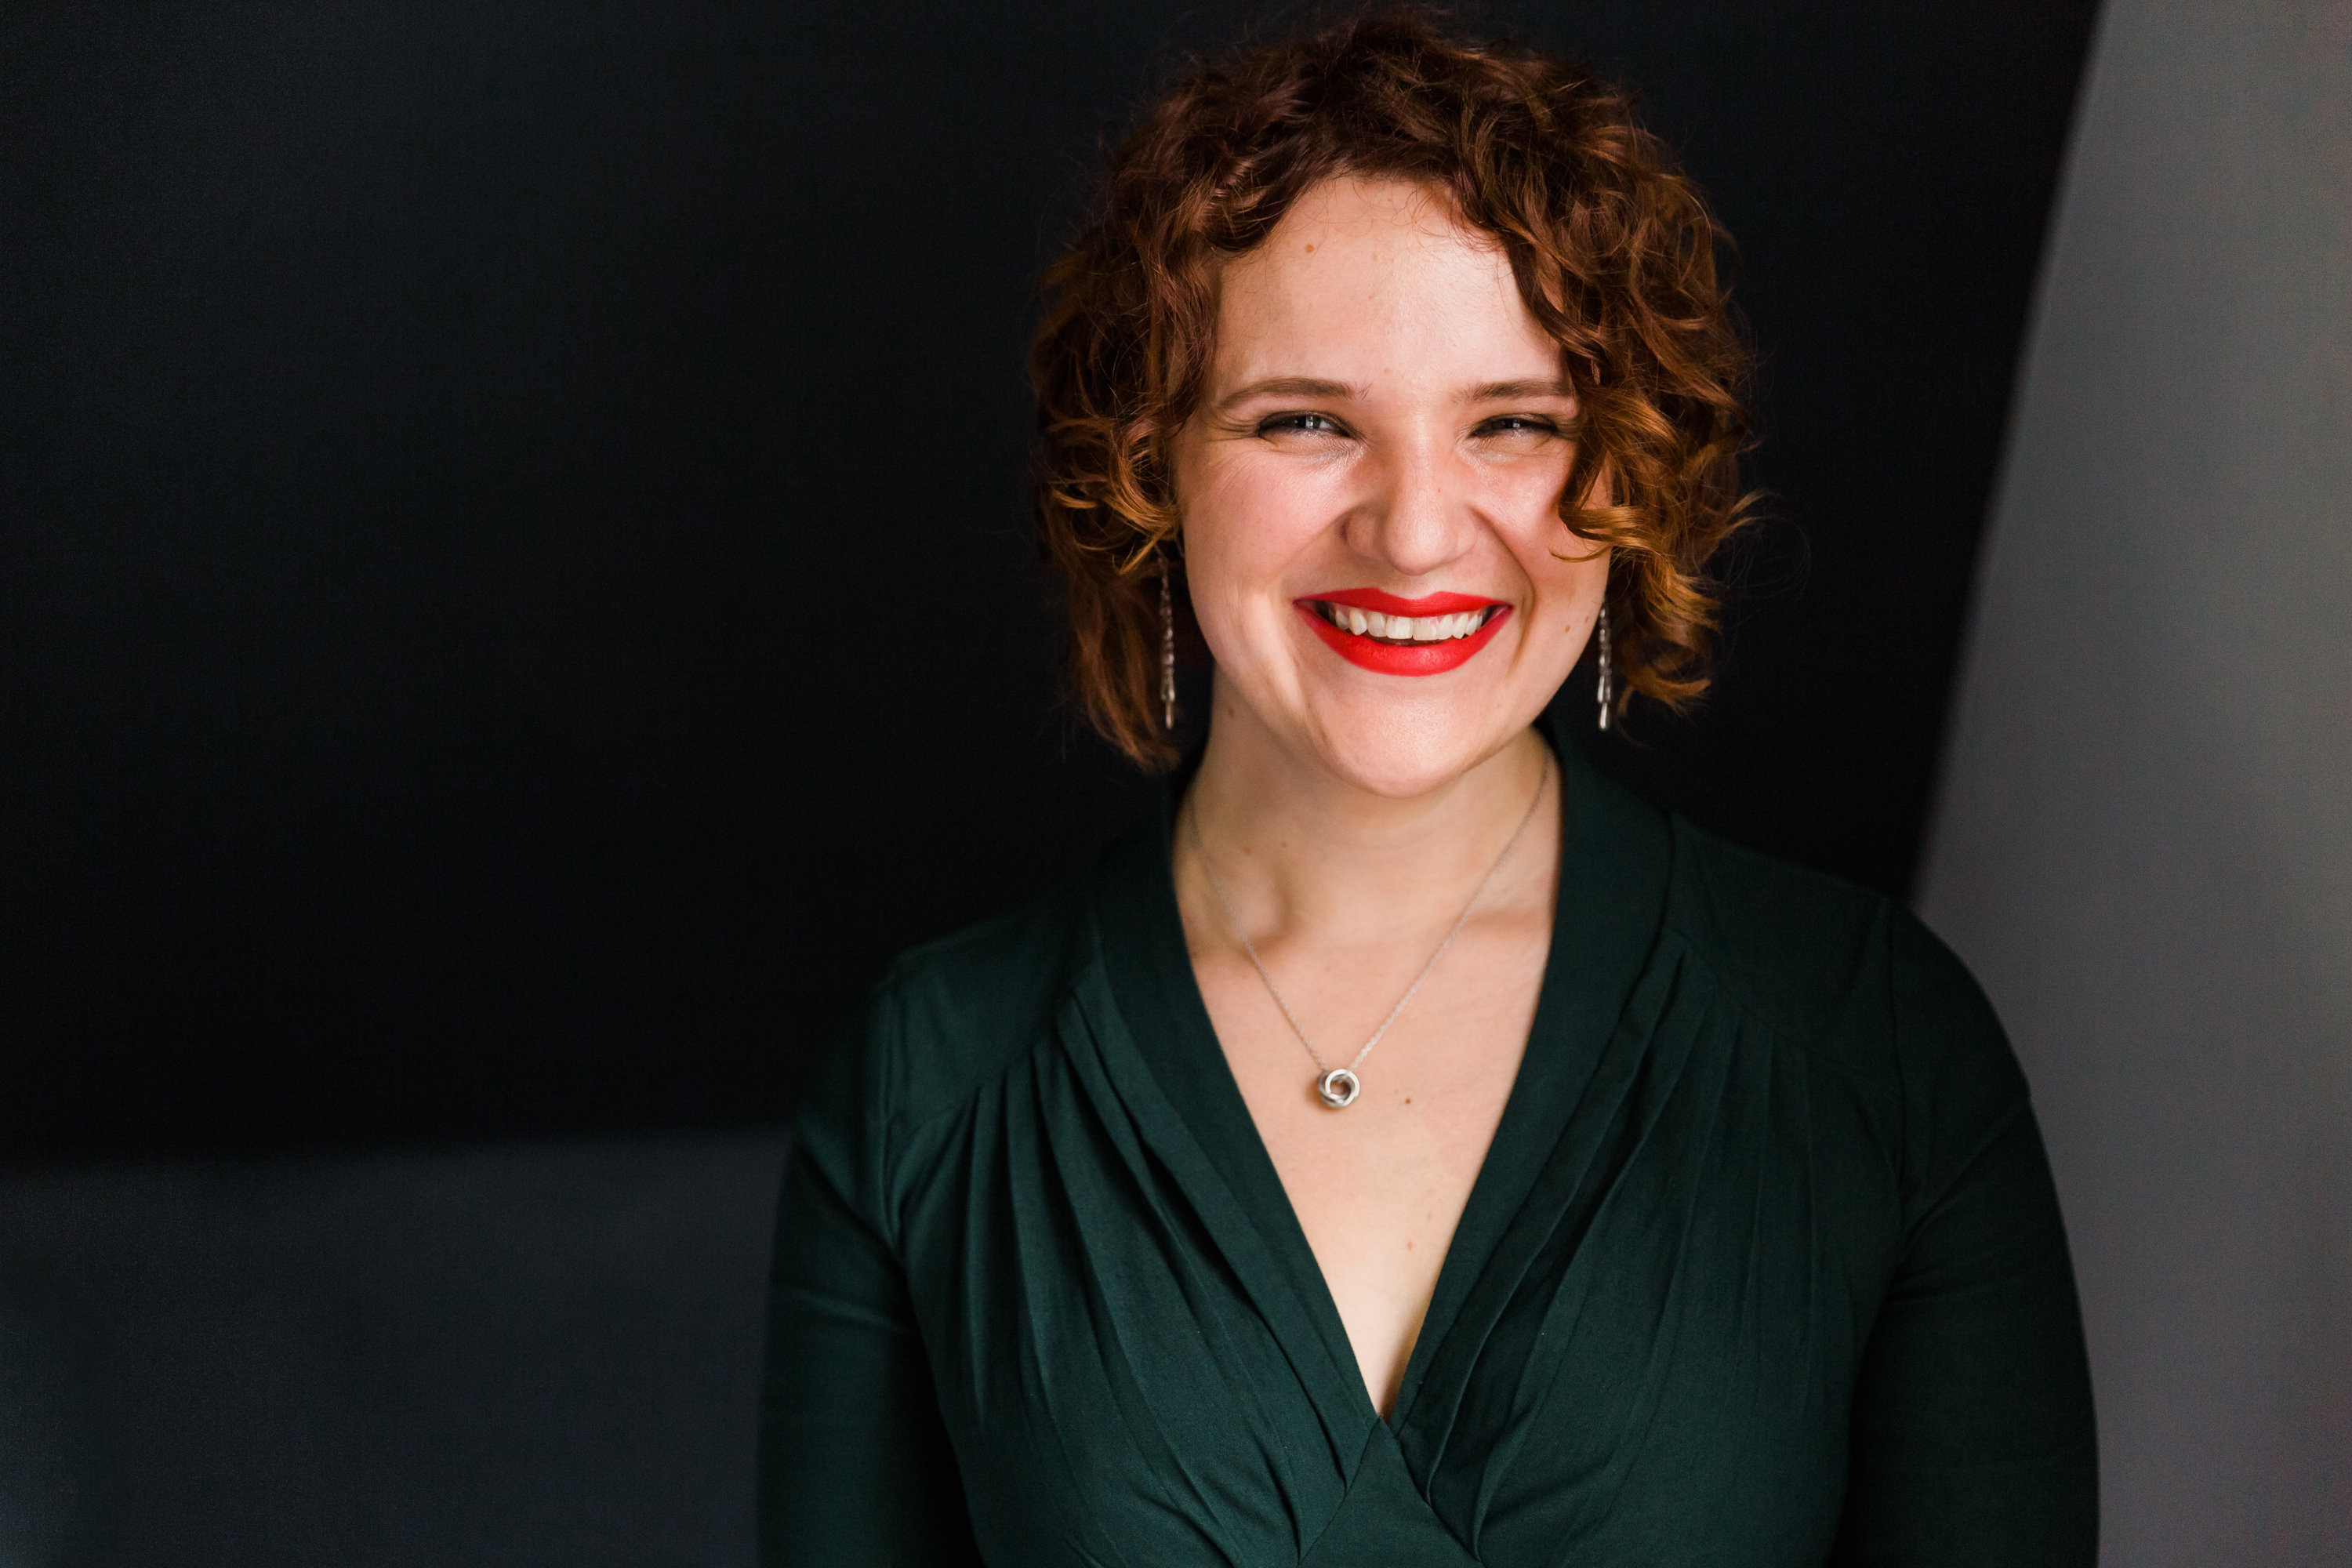 S.A. Borders-Shoemaker, author, smiling, red lipstick, red hair, curly hair, green dress, dark background, Stephanie Michelle Photography